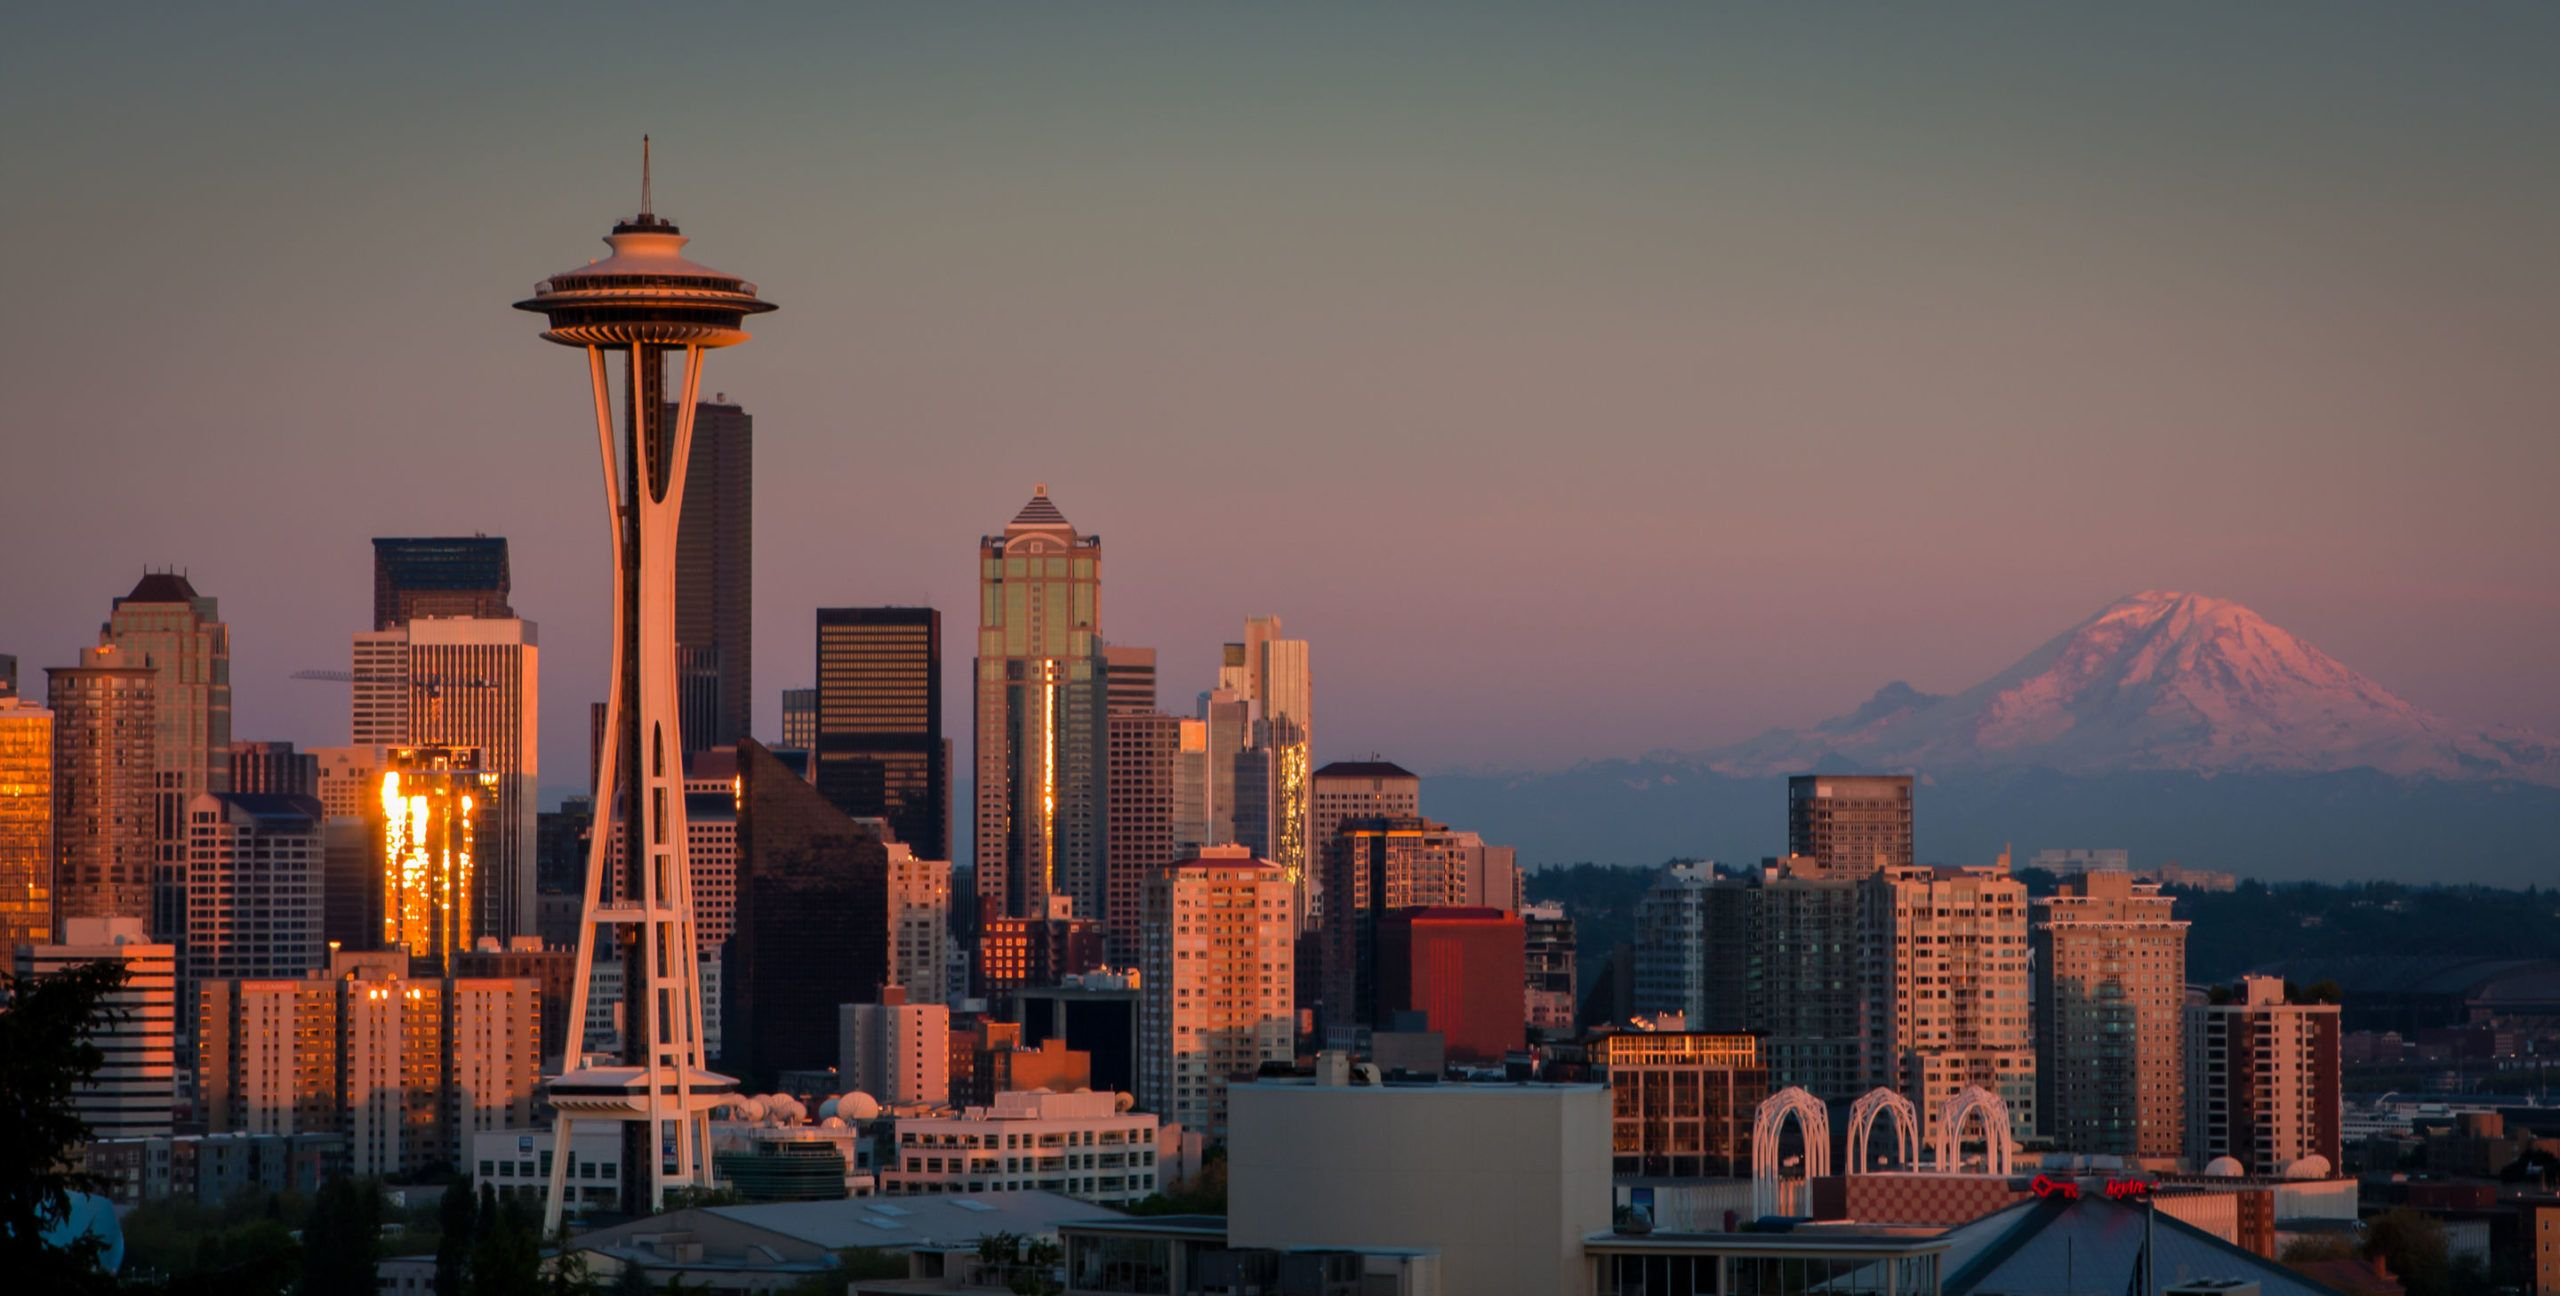 Washington state marijuana, Lack of cannabis tracking data in WA sparks confusion, missed business opportunities